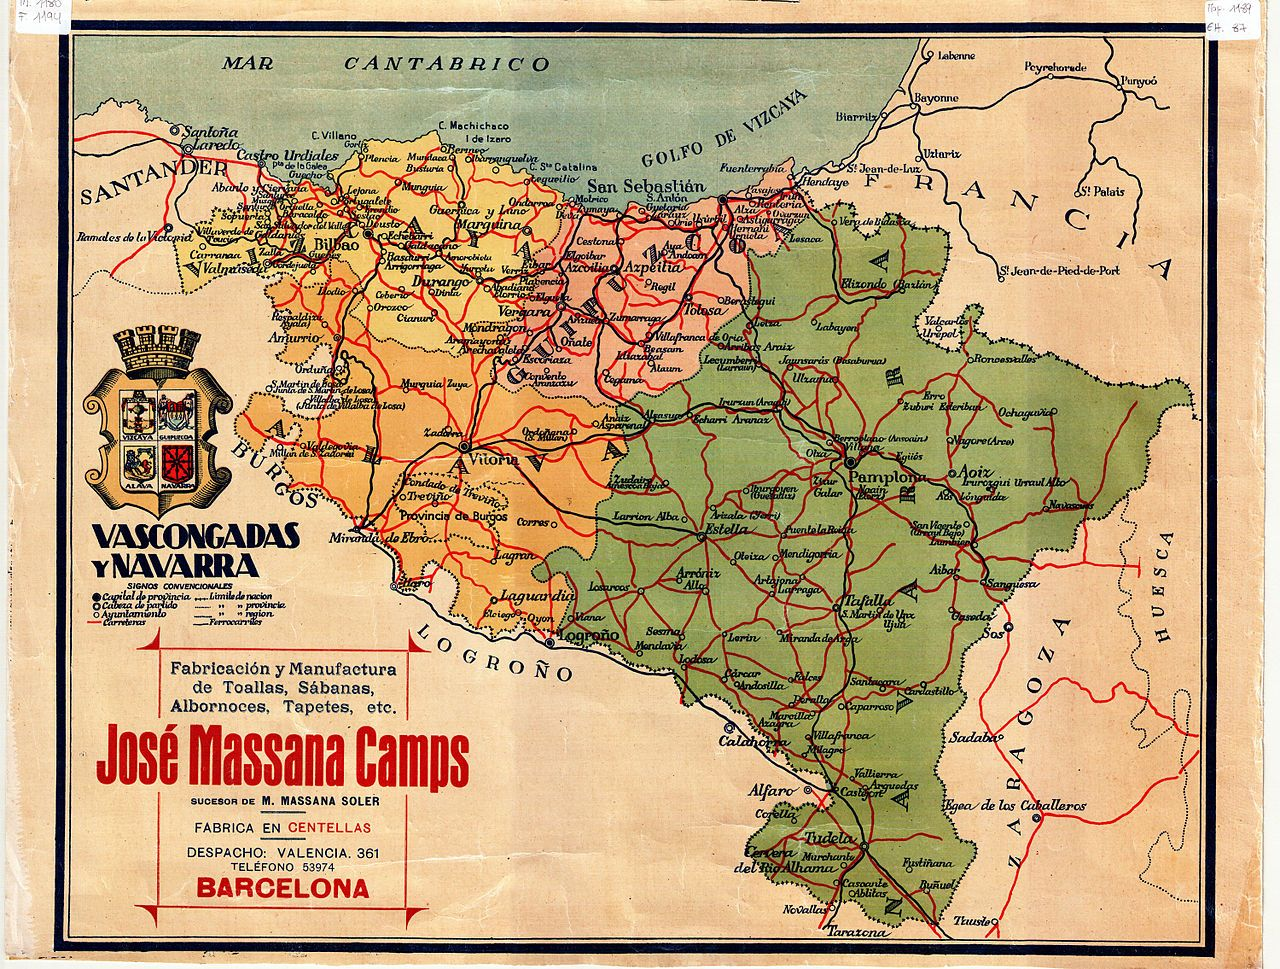 Pin canadian national railroad map on pinterest - Map Of Southern Basque Country 1950 S